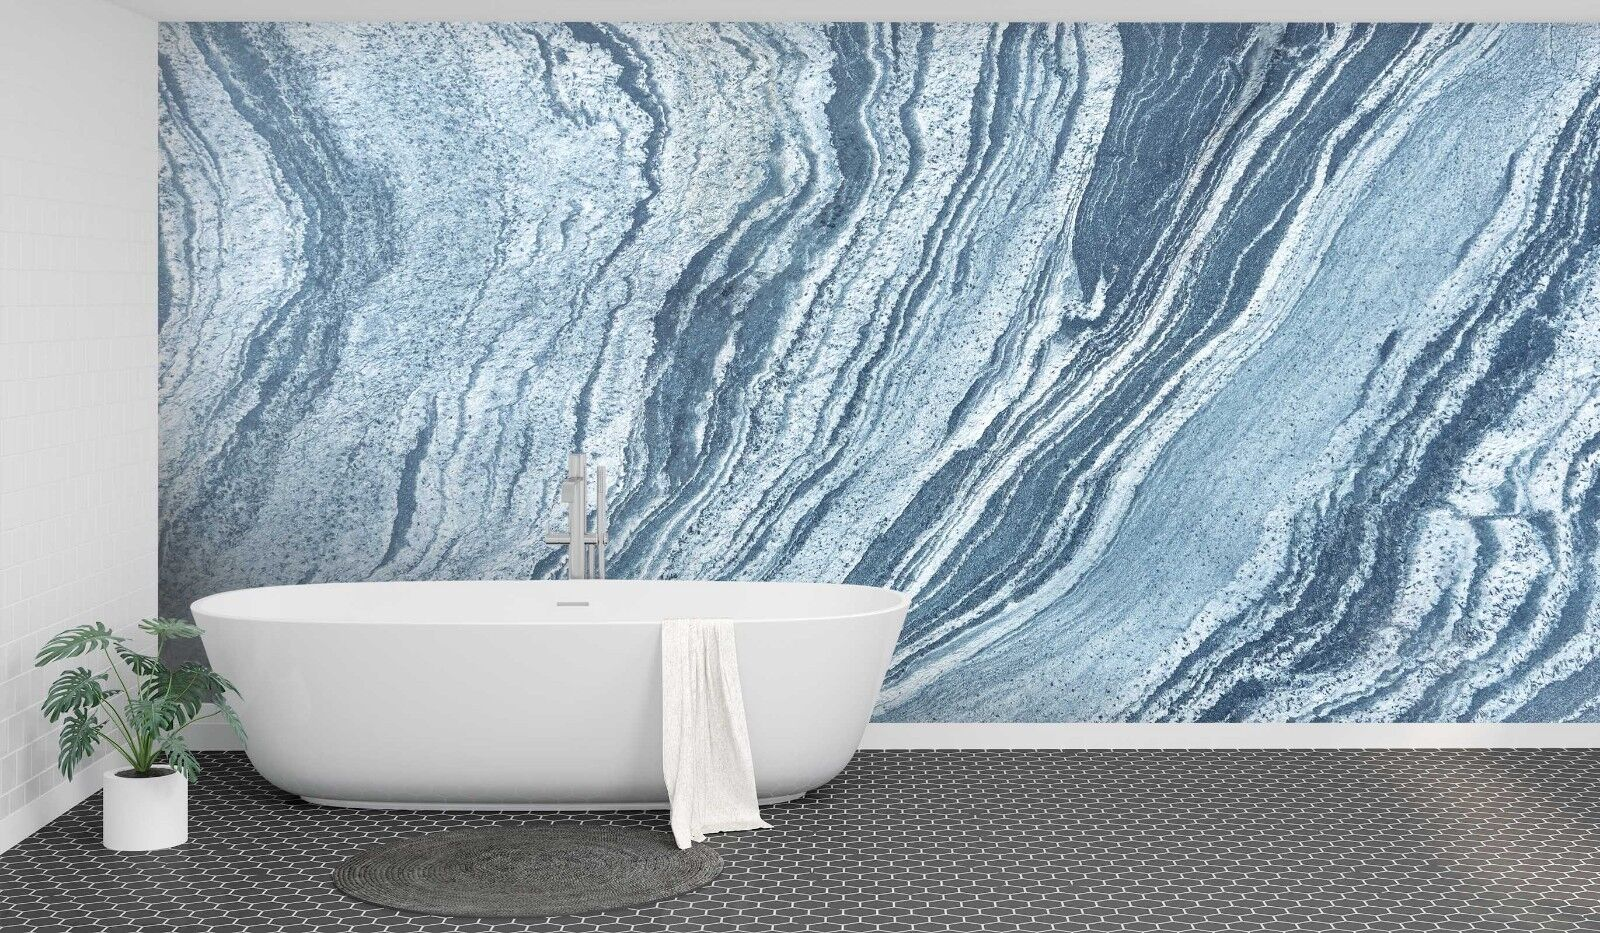 3D Stone Gradient 422 Texture Tiles Marble Wall Paper Decal Wallpaper Mural